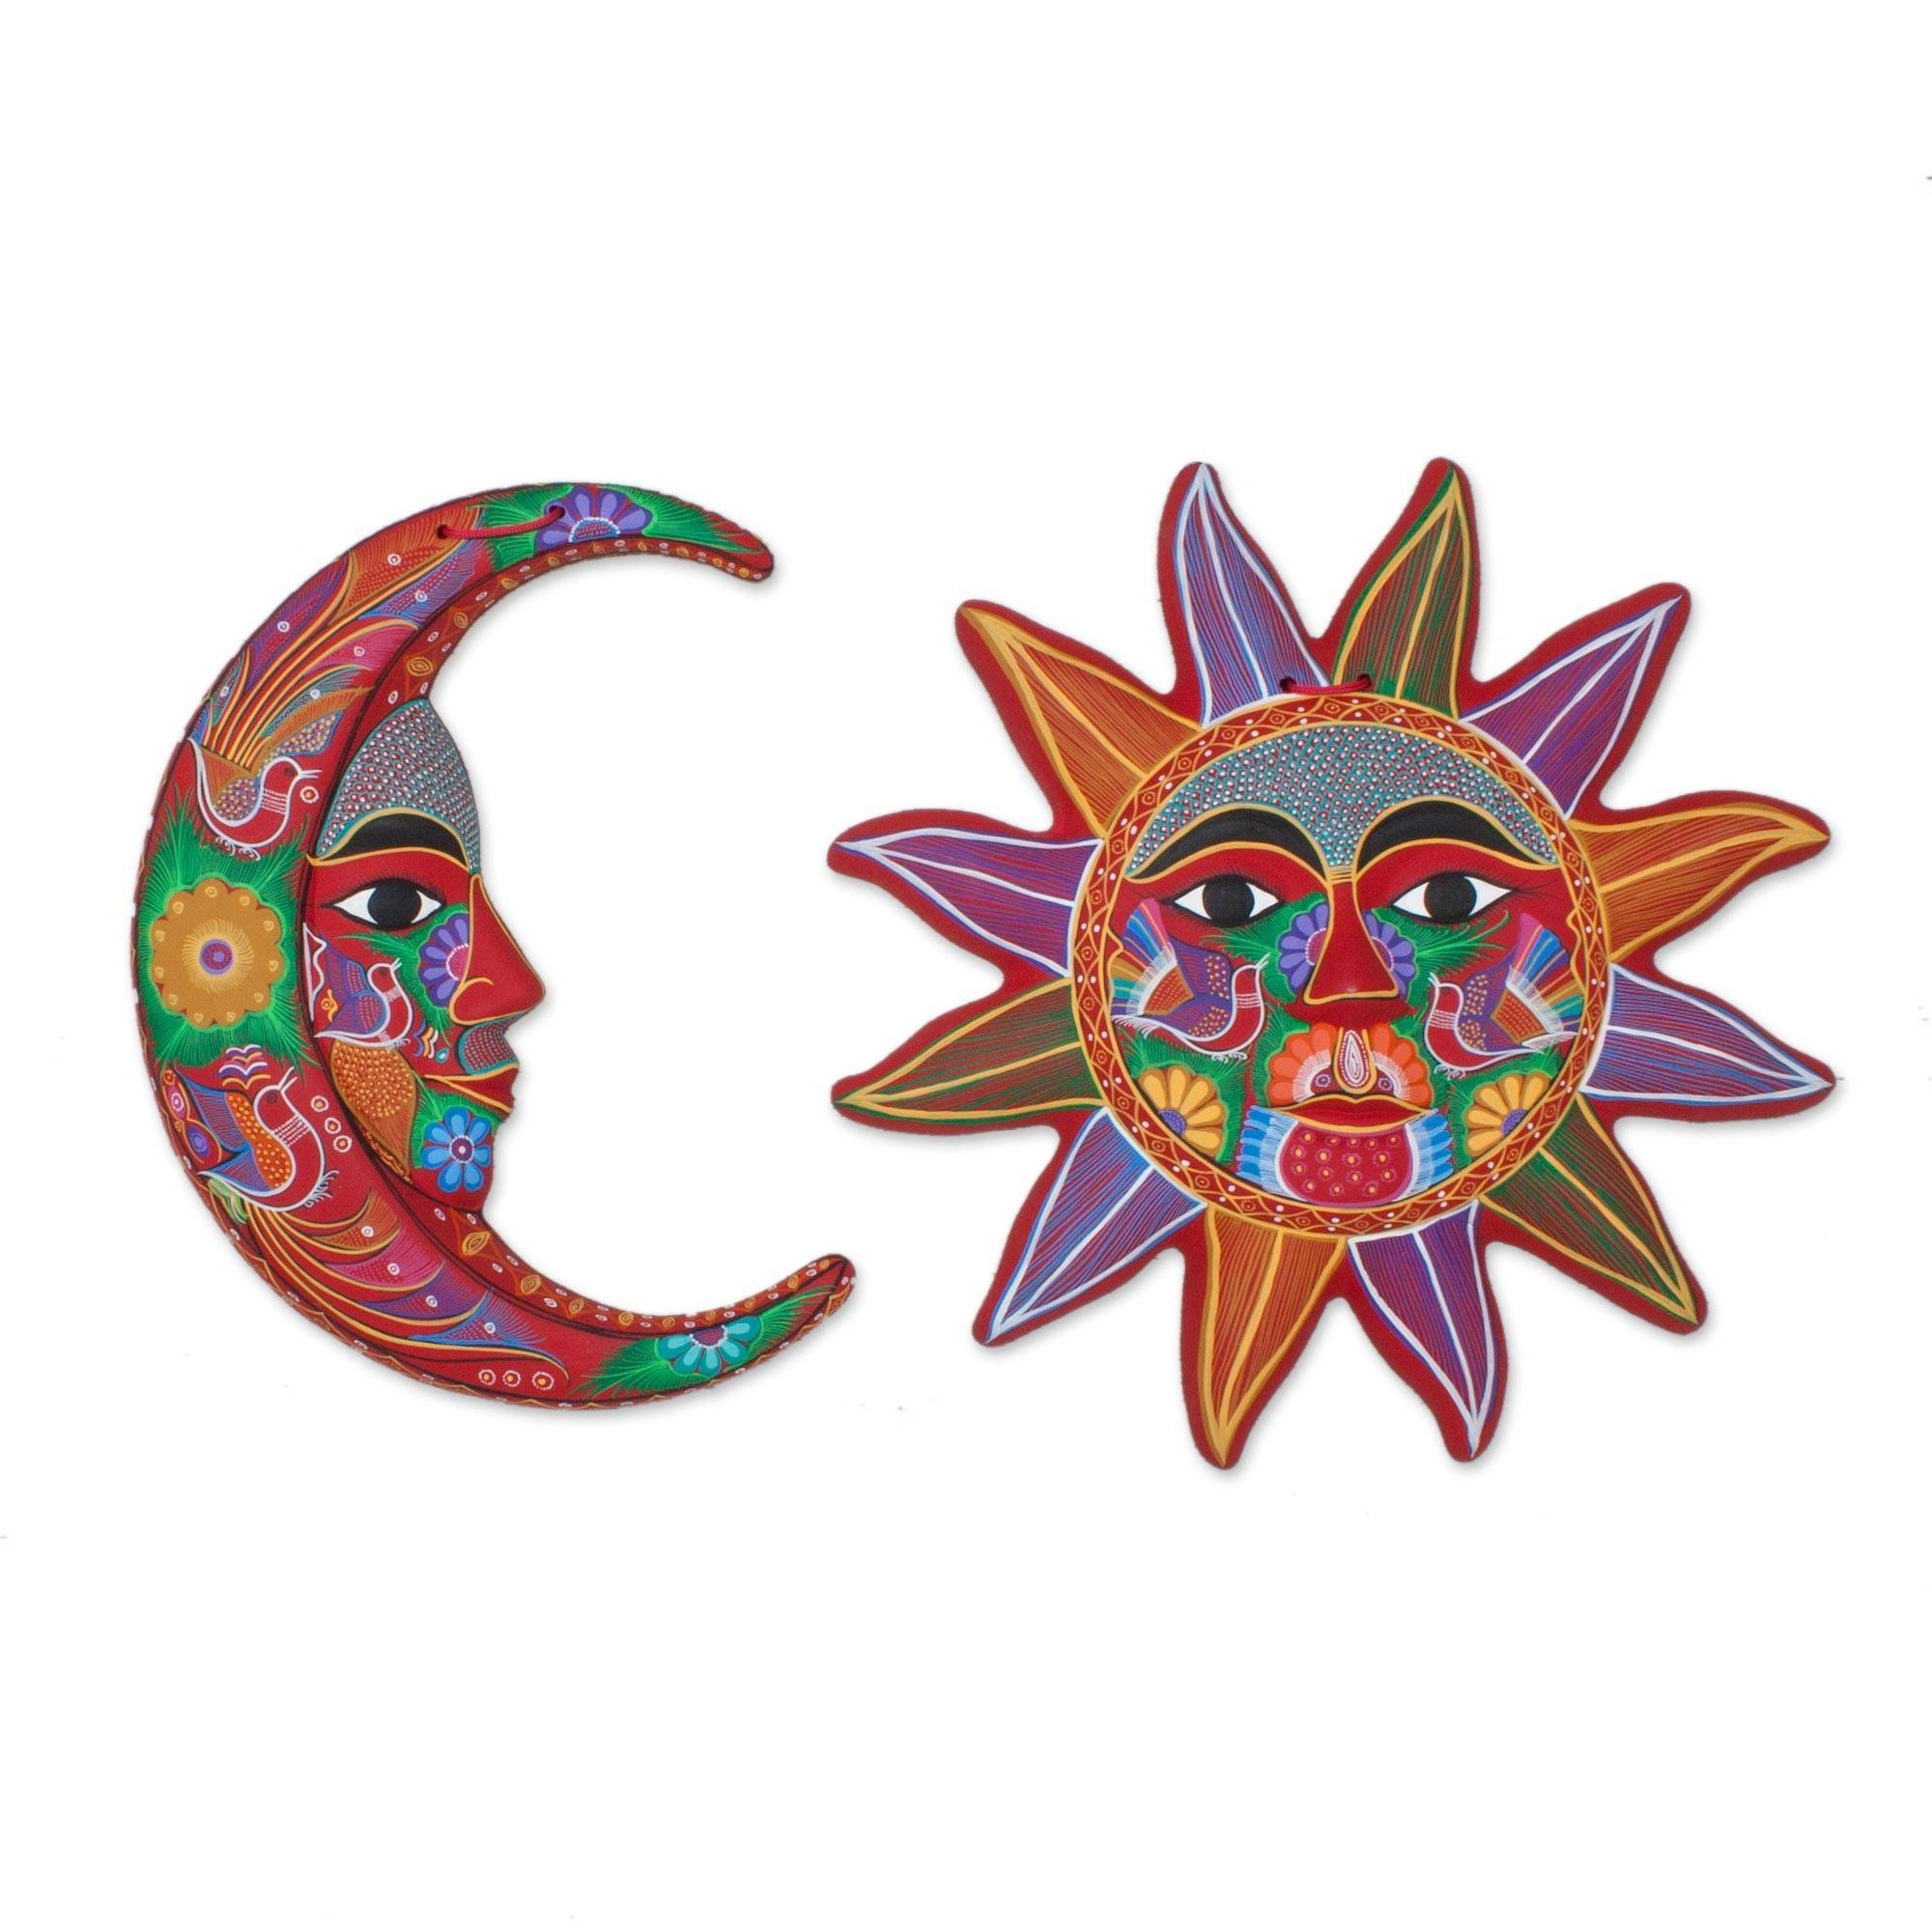 Fair Trade Sun And Moon Ceramic Wall Art From Mexico (Pair Intended For Recent Sun And Moon Metal Wall Art (View 5 of 20)